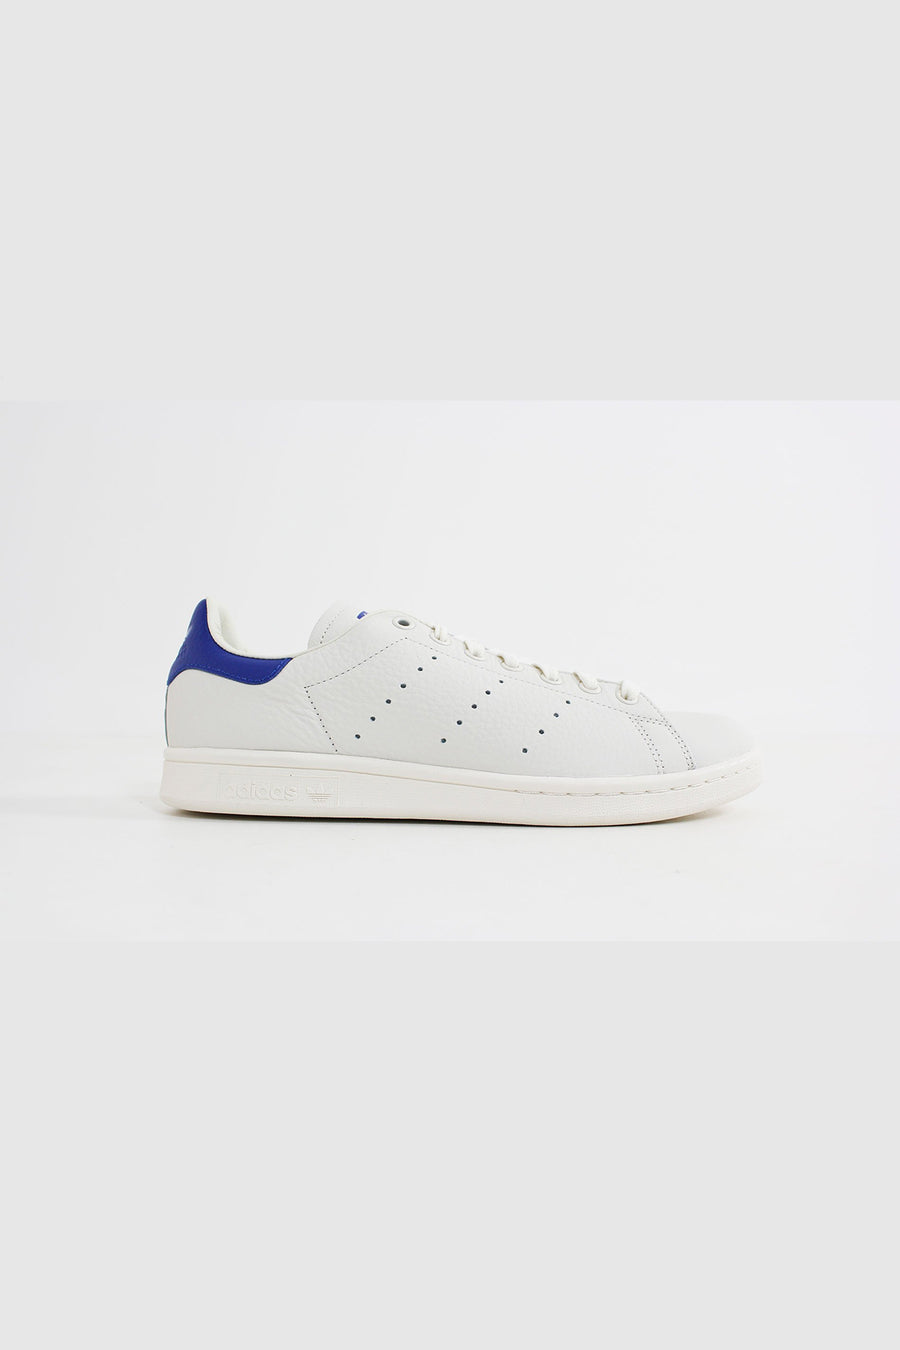 Adidas - Stan Smith (Weiß / Weiß / Royal) B37899